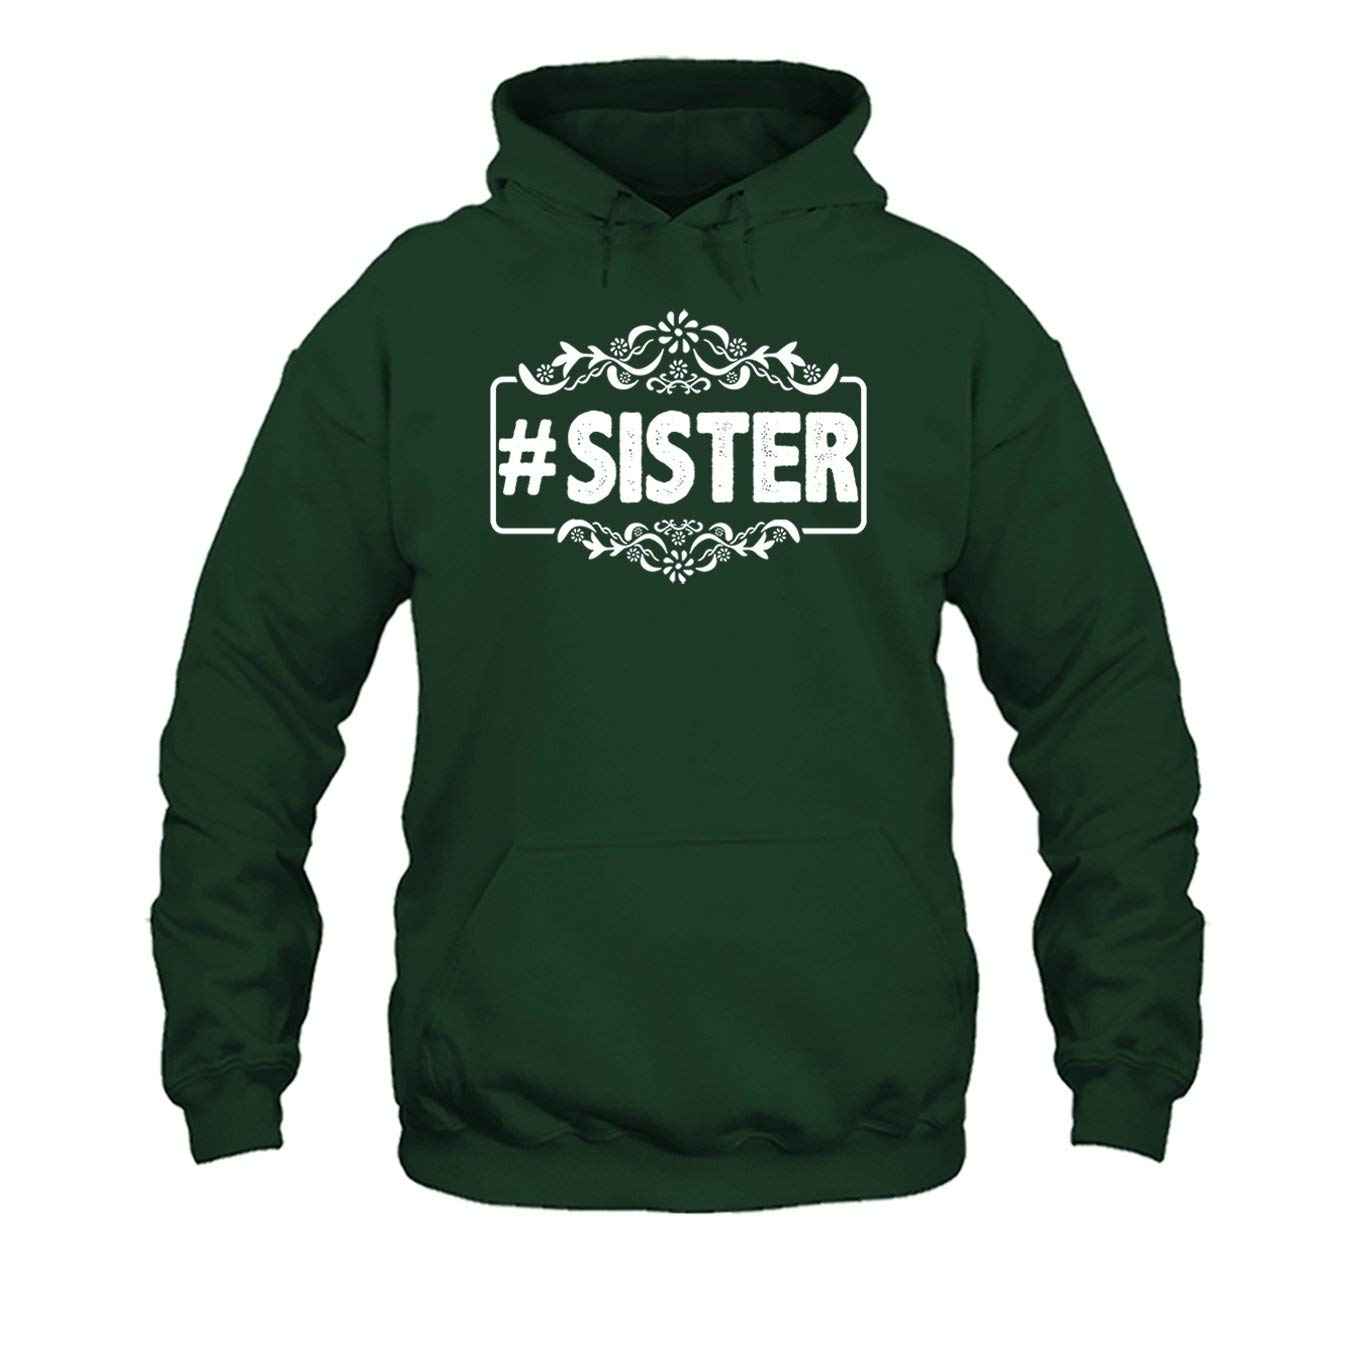 Sister Hashtag Tee Shirt Cool Long Sleeve Shirt